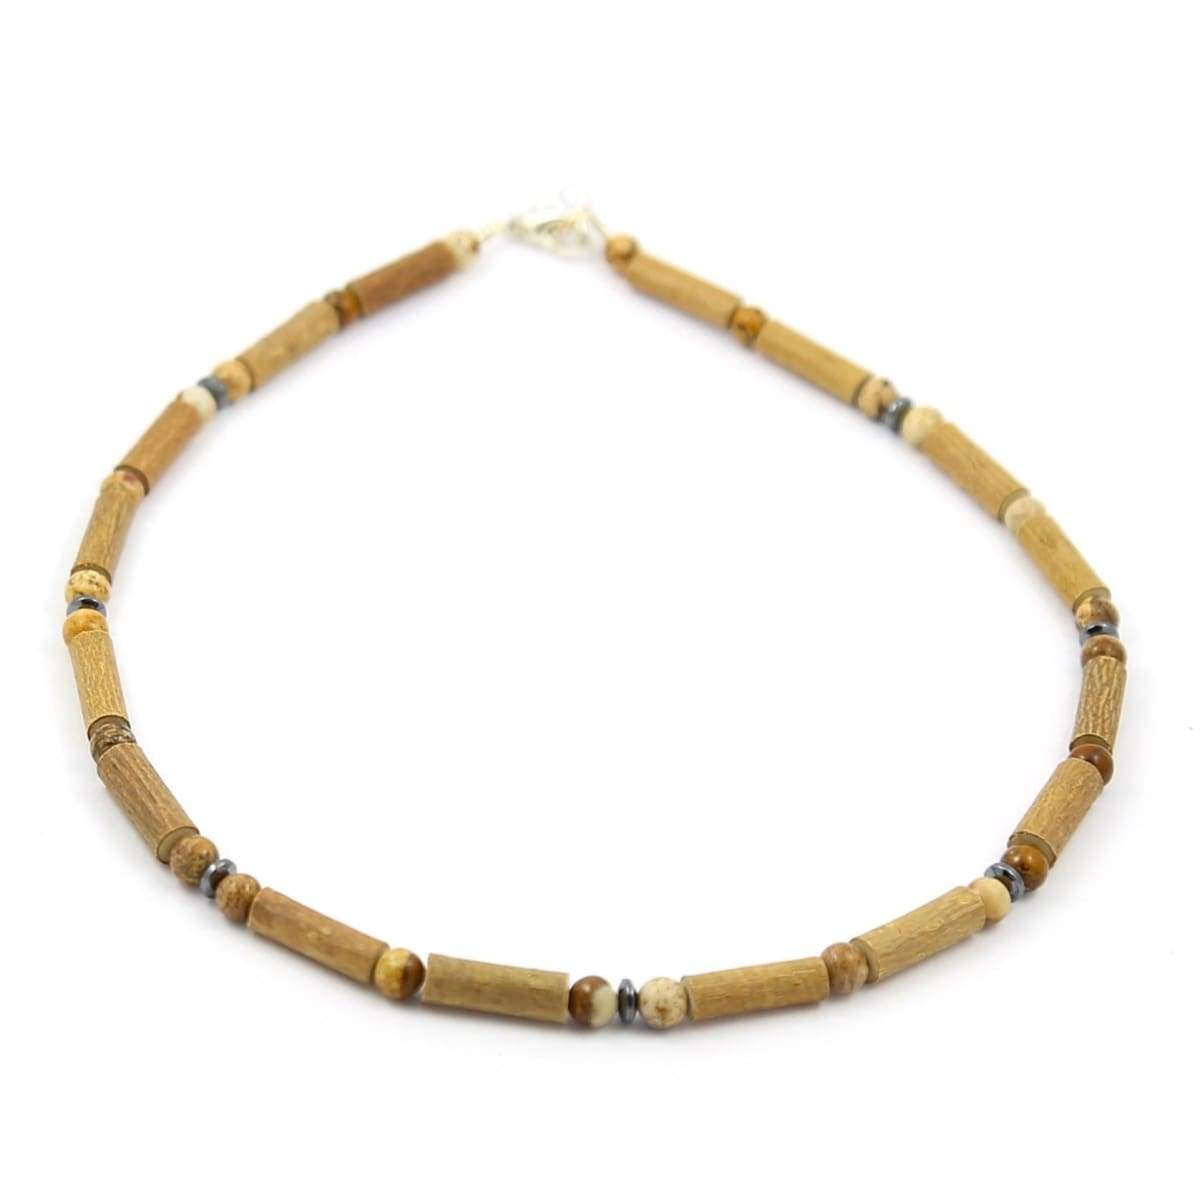 Hazel-Gemstone Natural Jasper - 11 Necklace - Lobster Claw Clasp - Hazelwood & Gemstone Jewelry